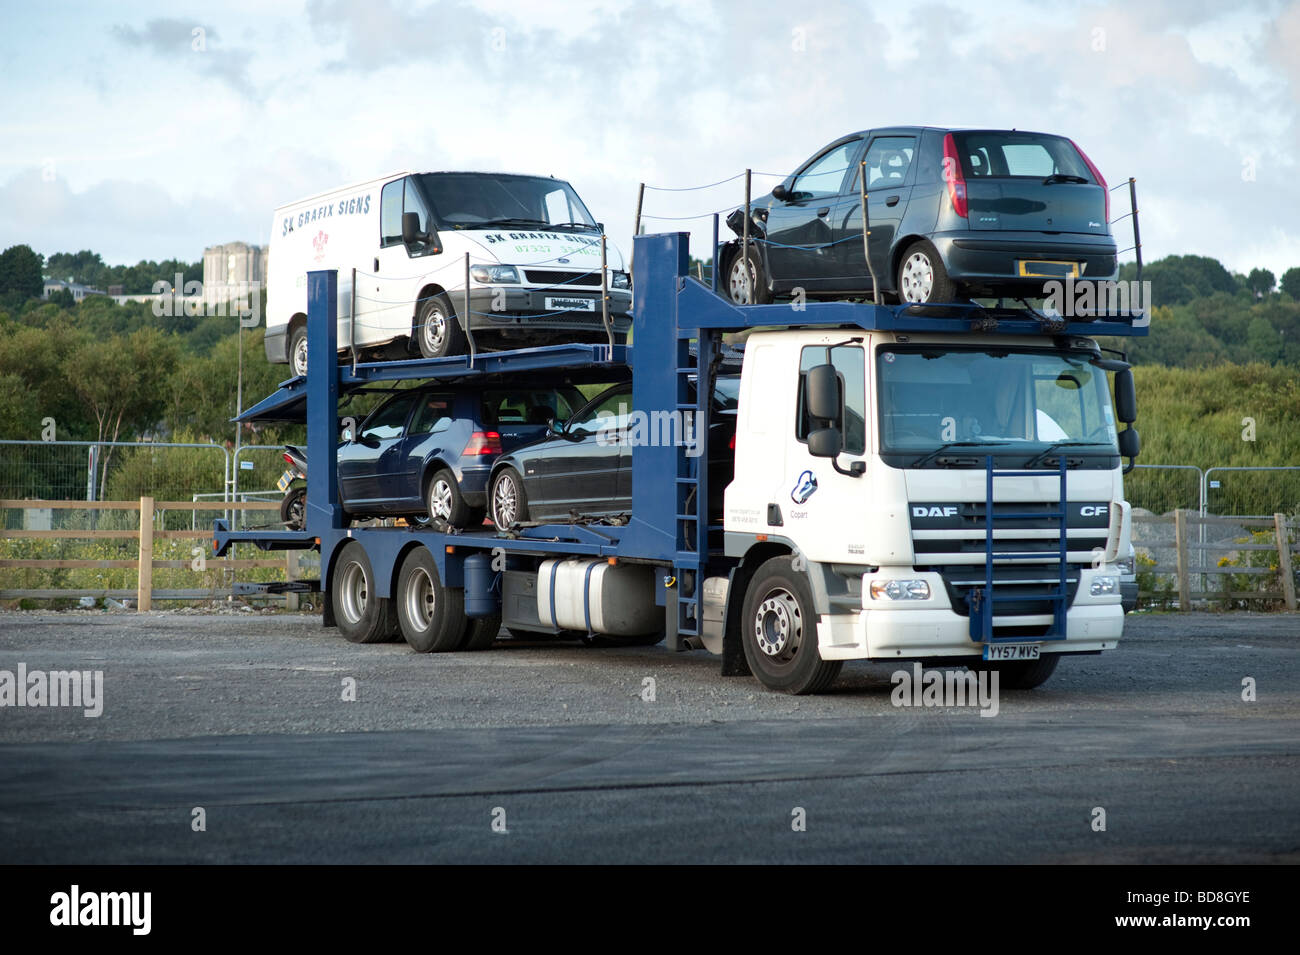 HGV truck Car transporter collecting cars and vans for repair - Stock Image